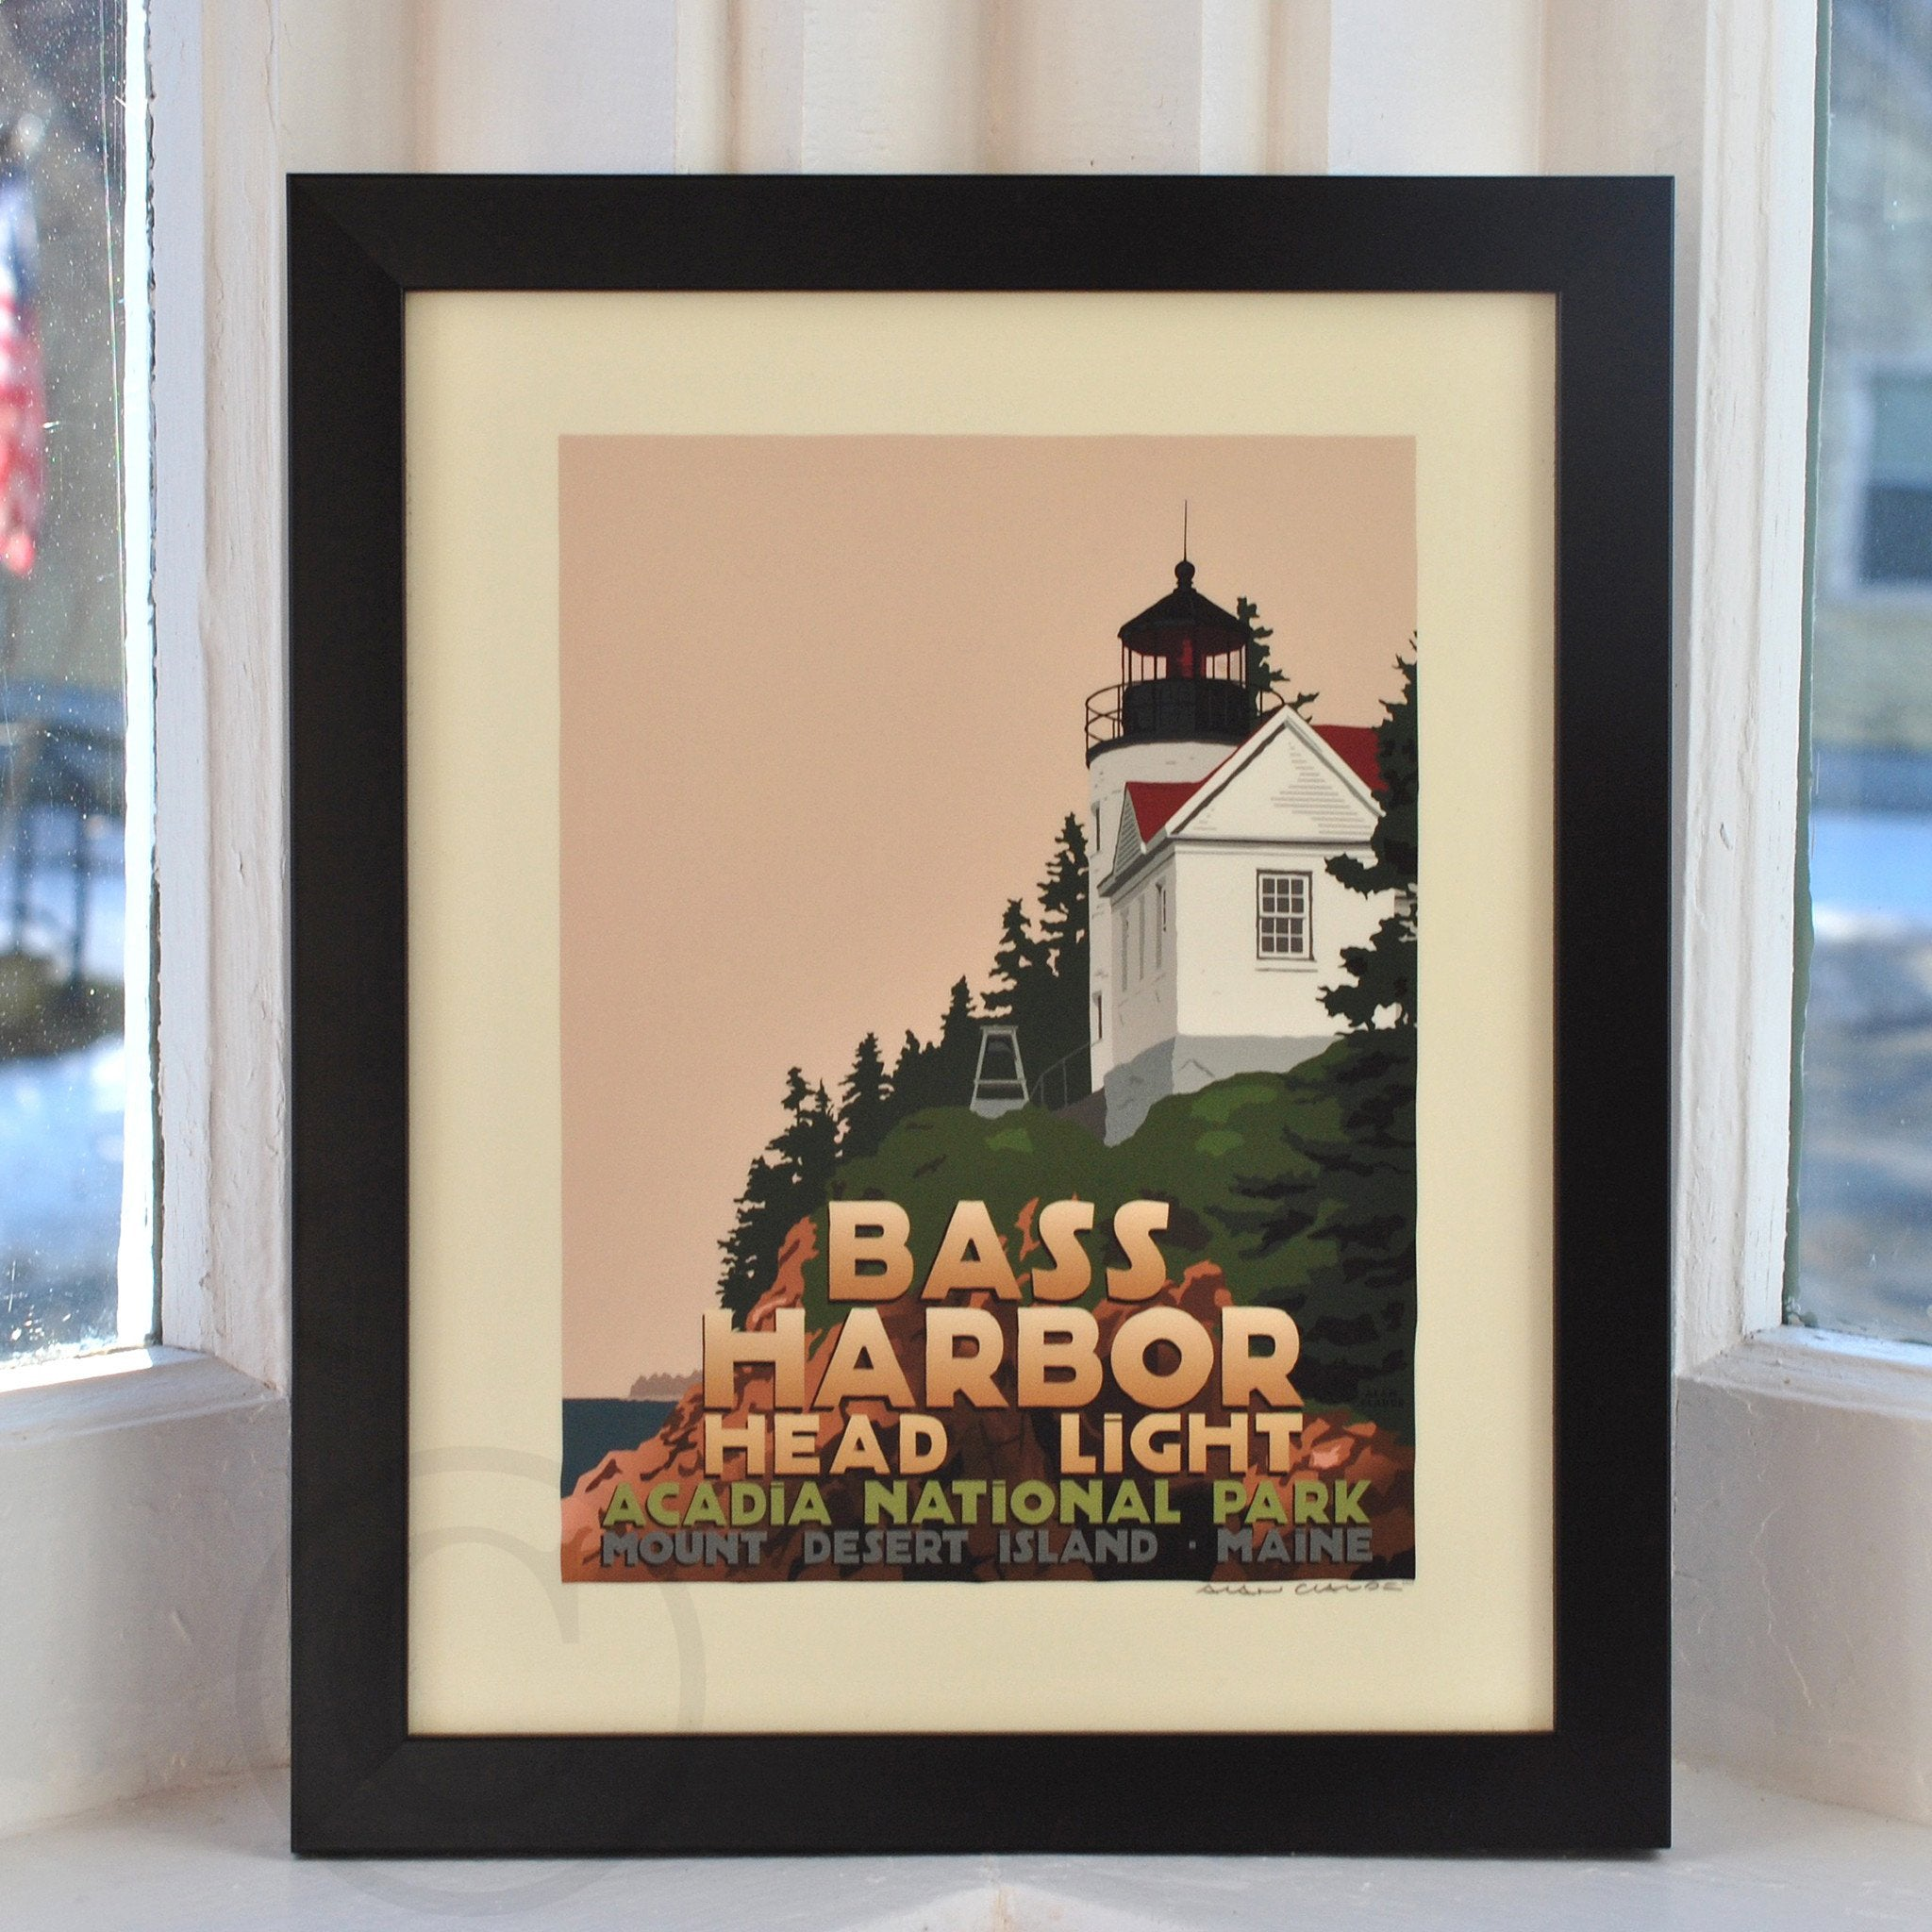 "Bass Harbor Head Light Art Print 8"" x 10"" Framed Travel Poster - Maine"